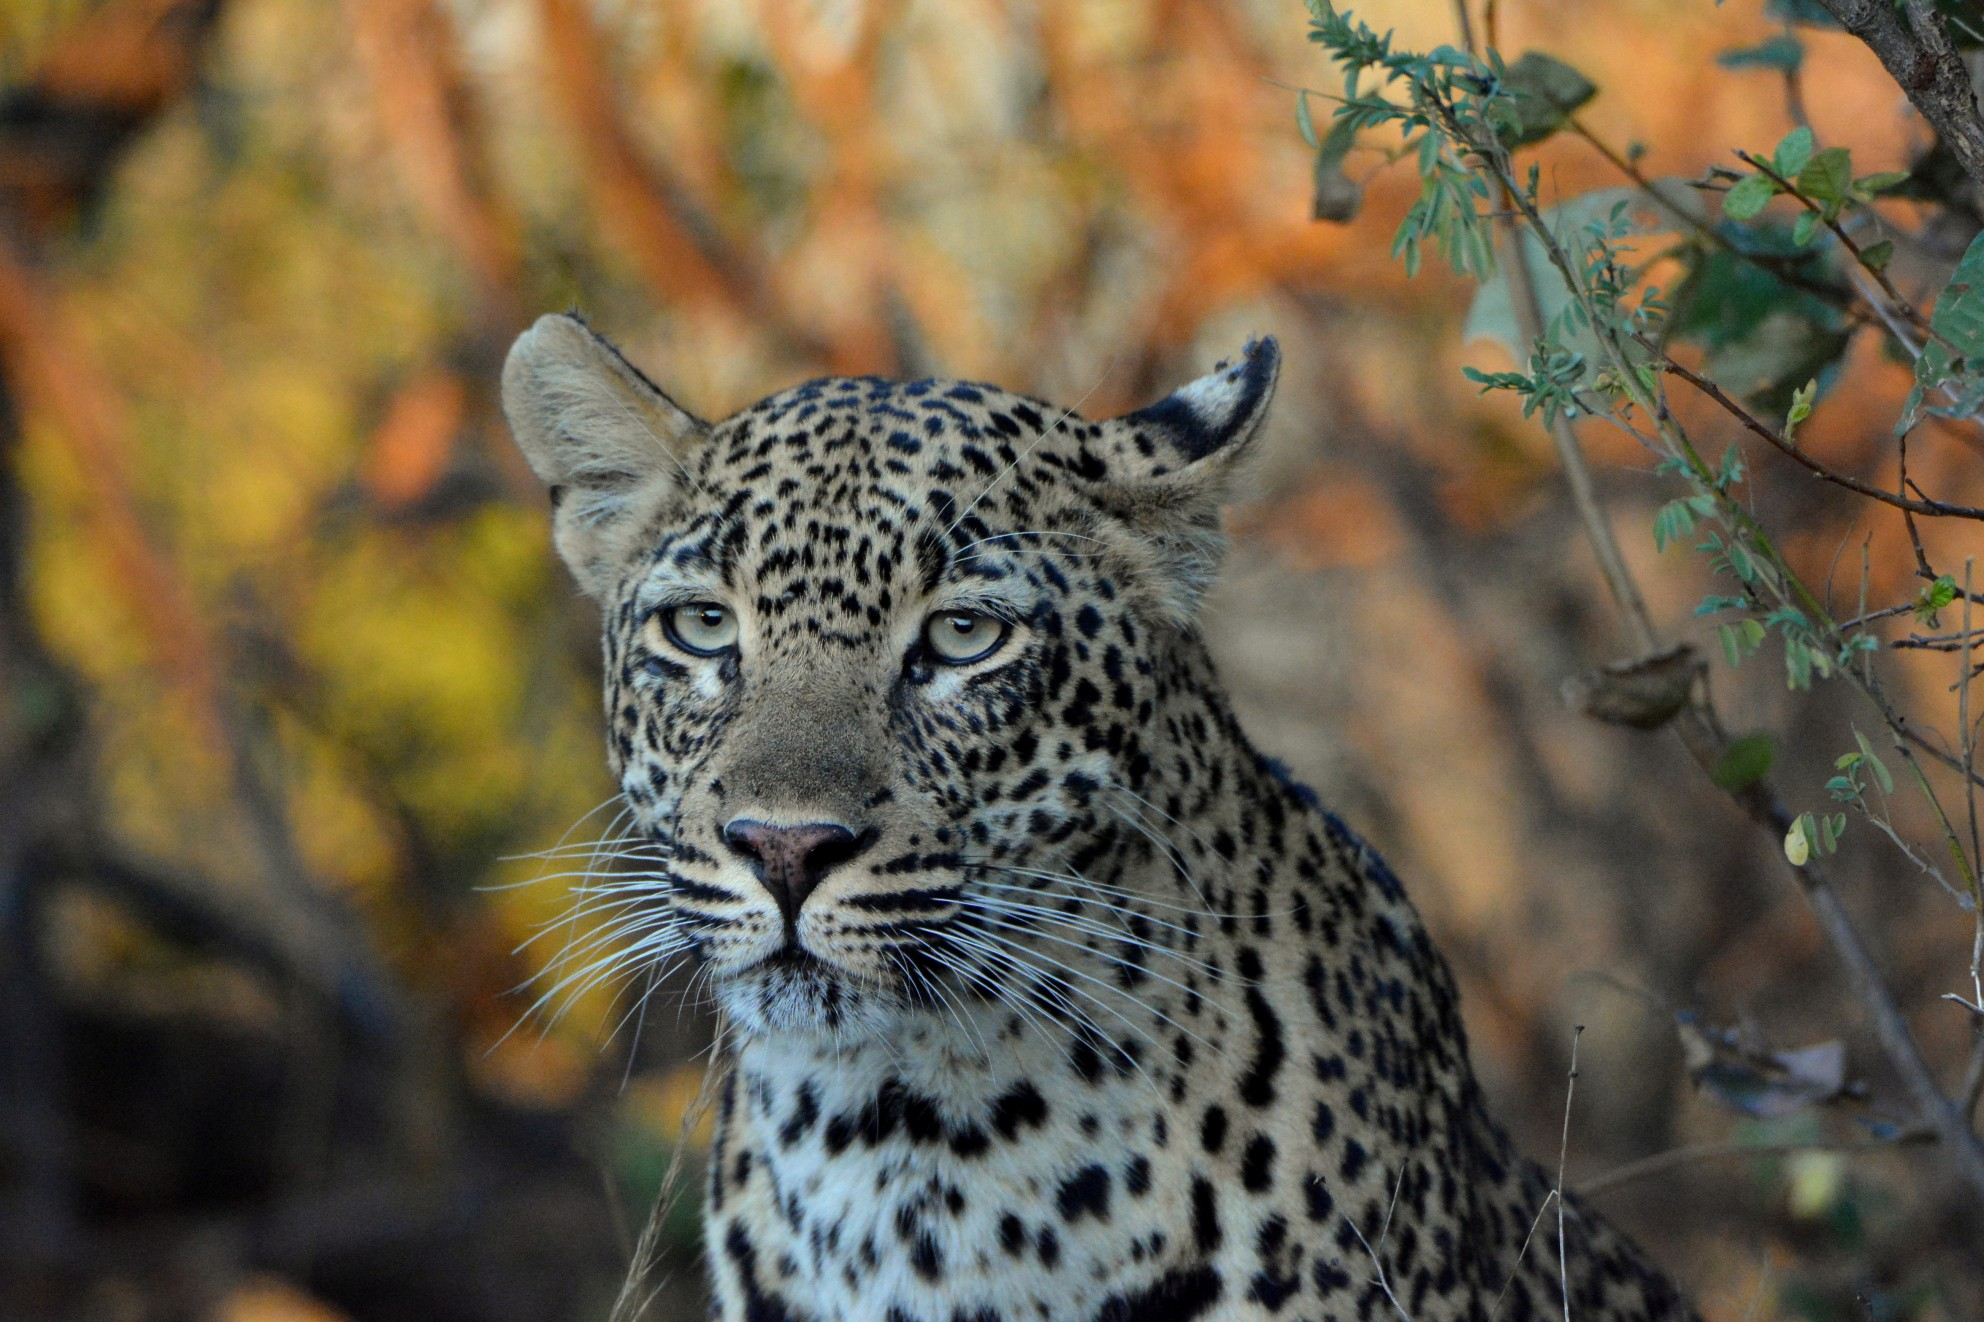 Sabi Sand Reserve South Africa in Africa Answers Photo Contest